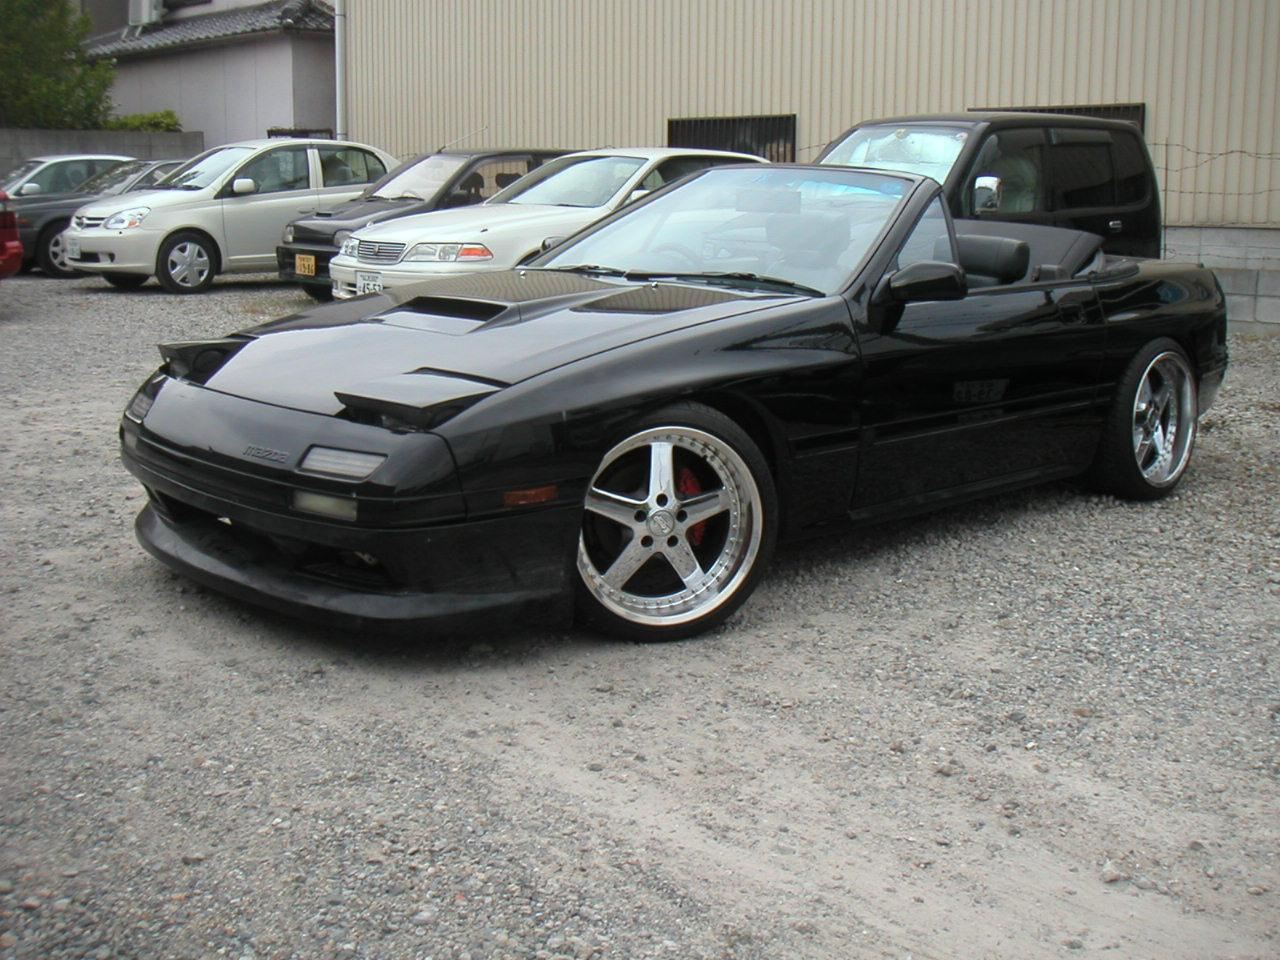 RX7 FC Wide Body Kit http://wtmbusiness.com/10/awesome-rx7